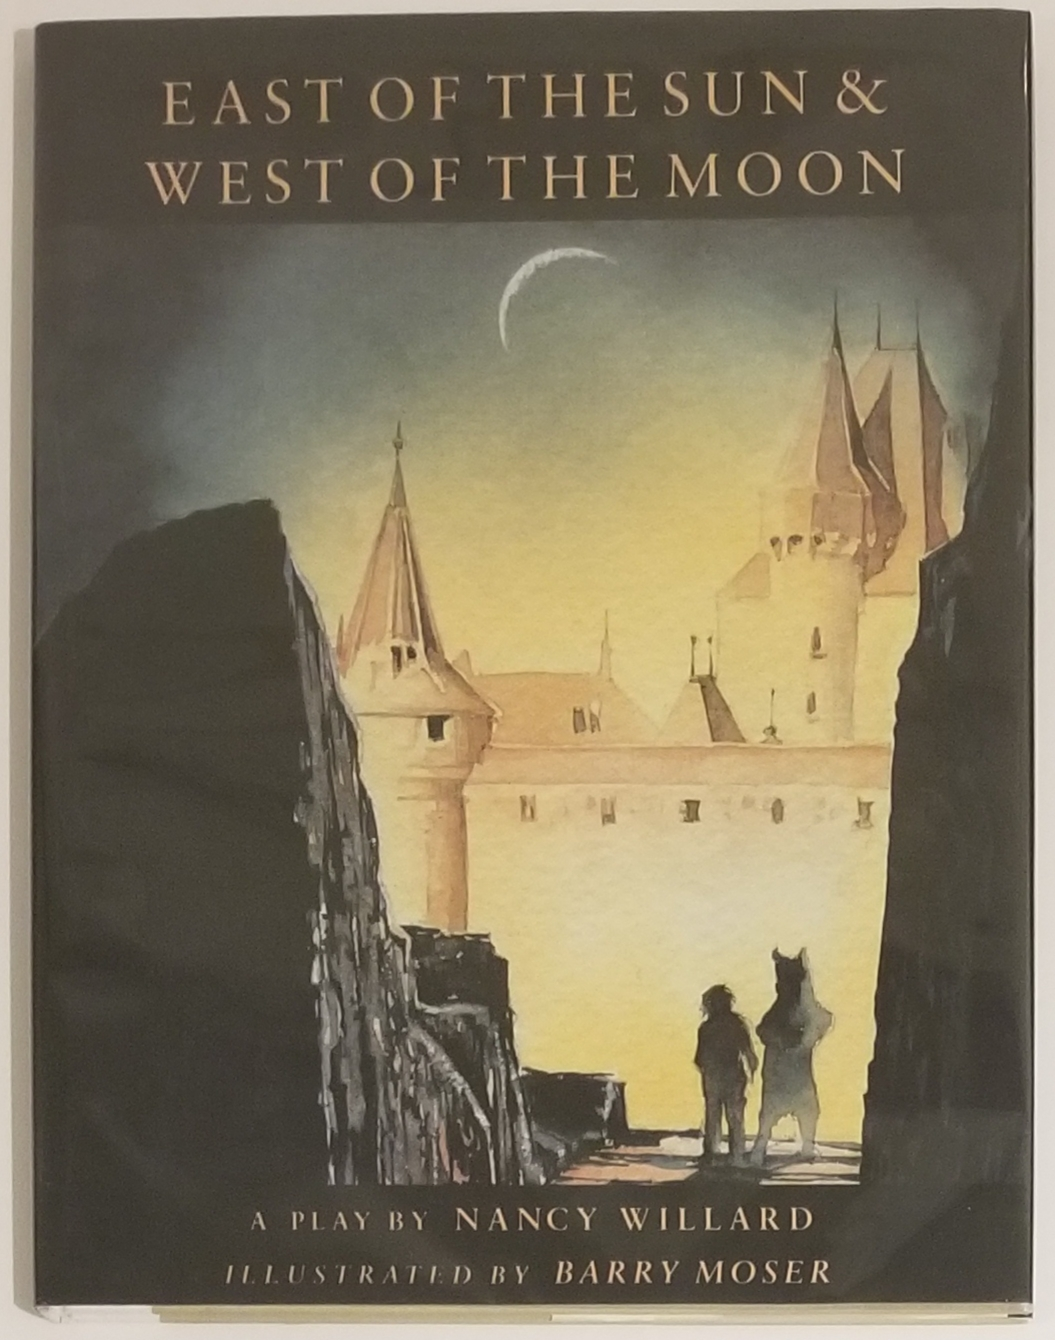 EAST OF THE SUN & WEST OF THE MOON. A Play. Illustrated by Barry Moser. BOTH, Nancy Willard, Barry Moser.